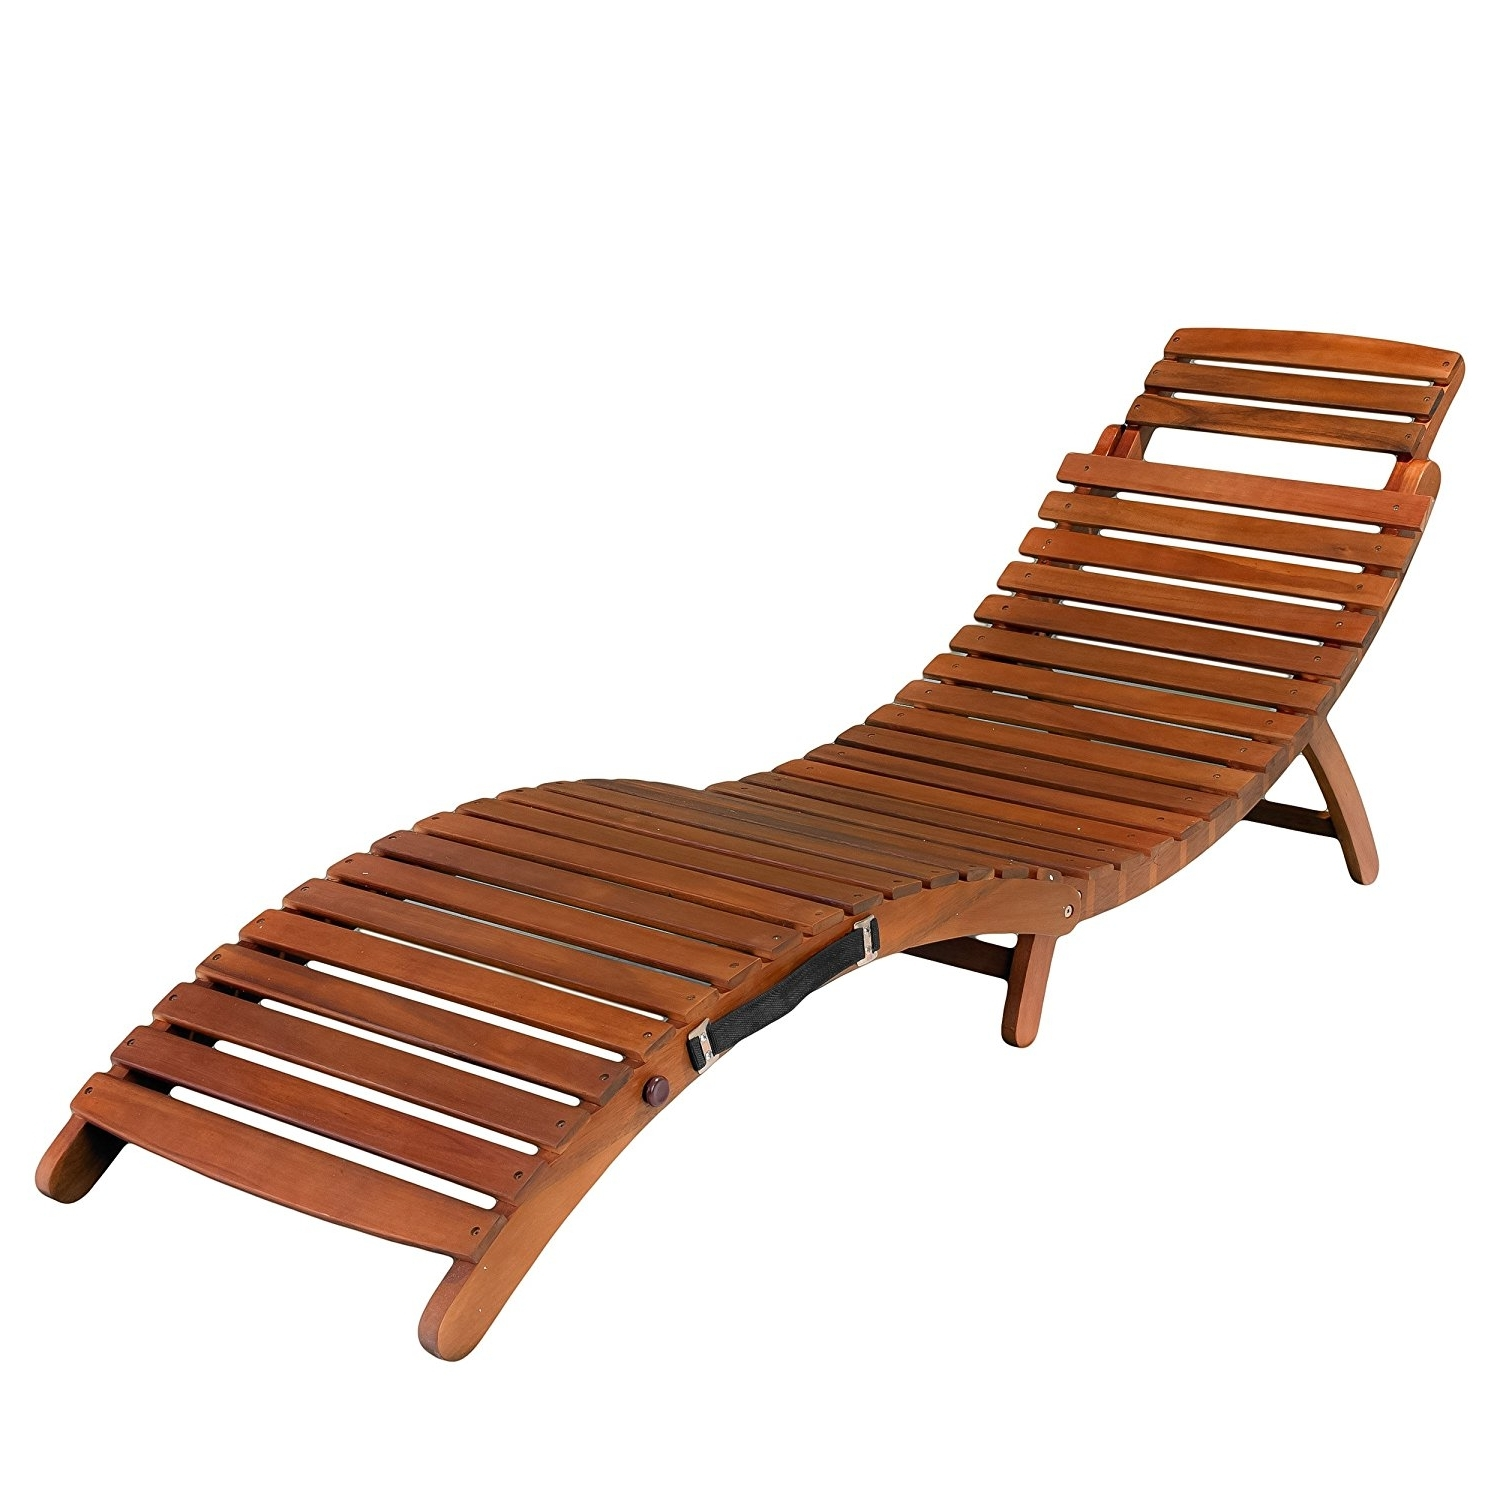 Cheap Folding Chaise Lounge Chairs For Outdoor Inside Popular Amazon: Best Selling Del Rio Wood Outdoor Chaise Lounge (View 14 of 15)